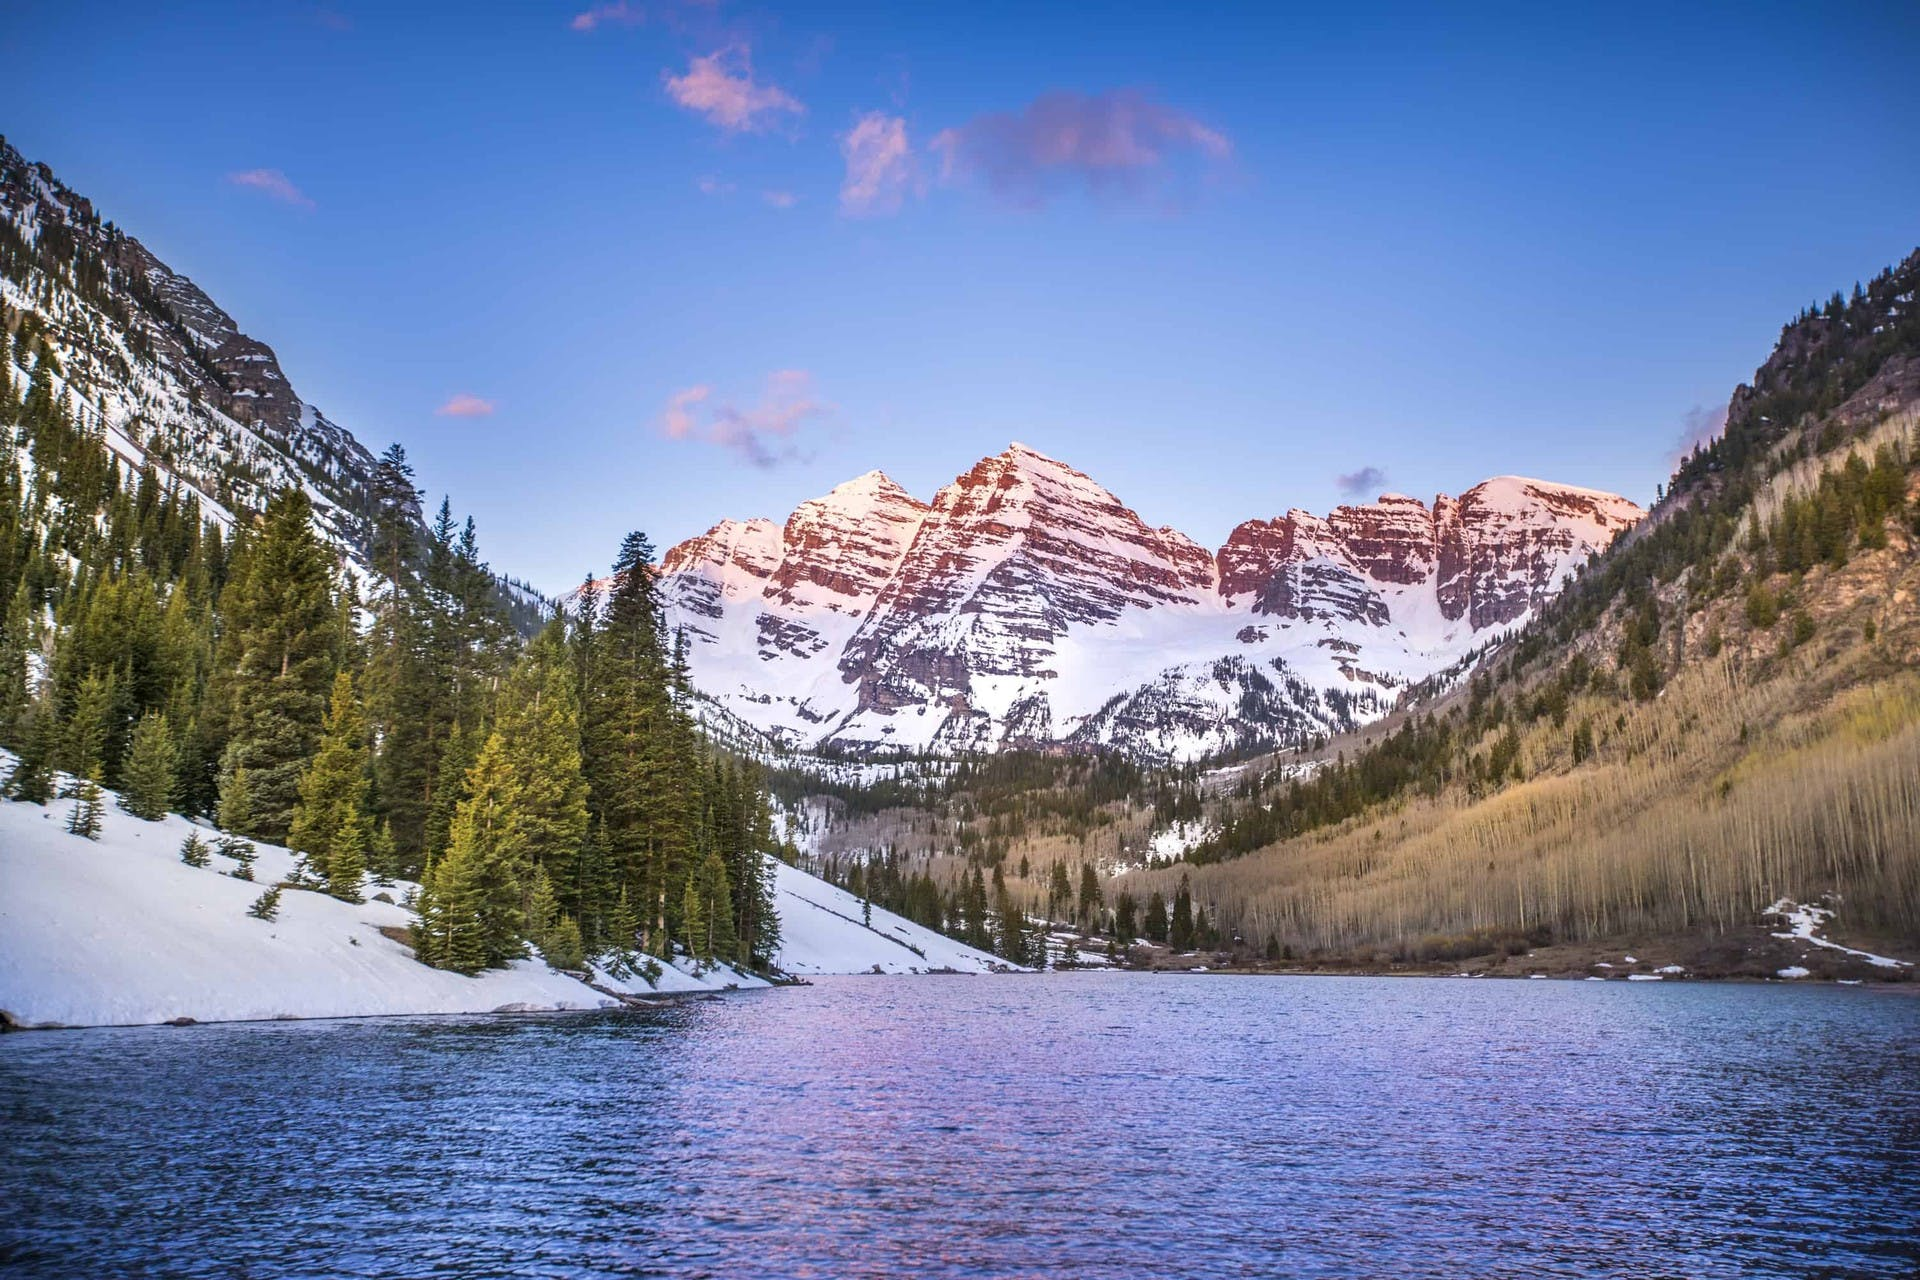 Lake in Colorado surrounded by snowy mountain peaks